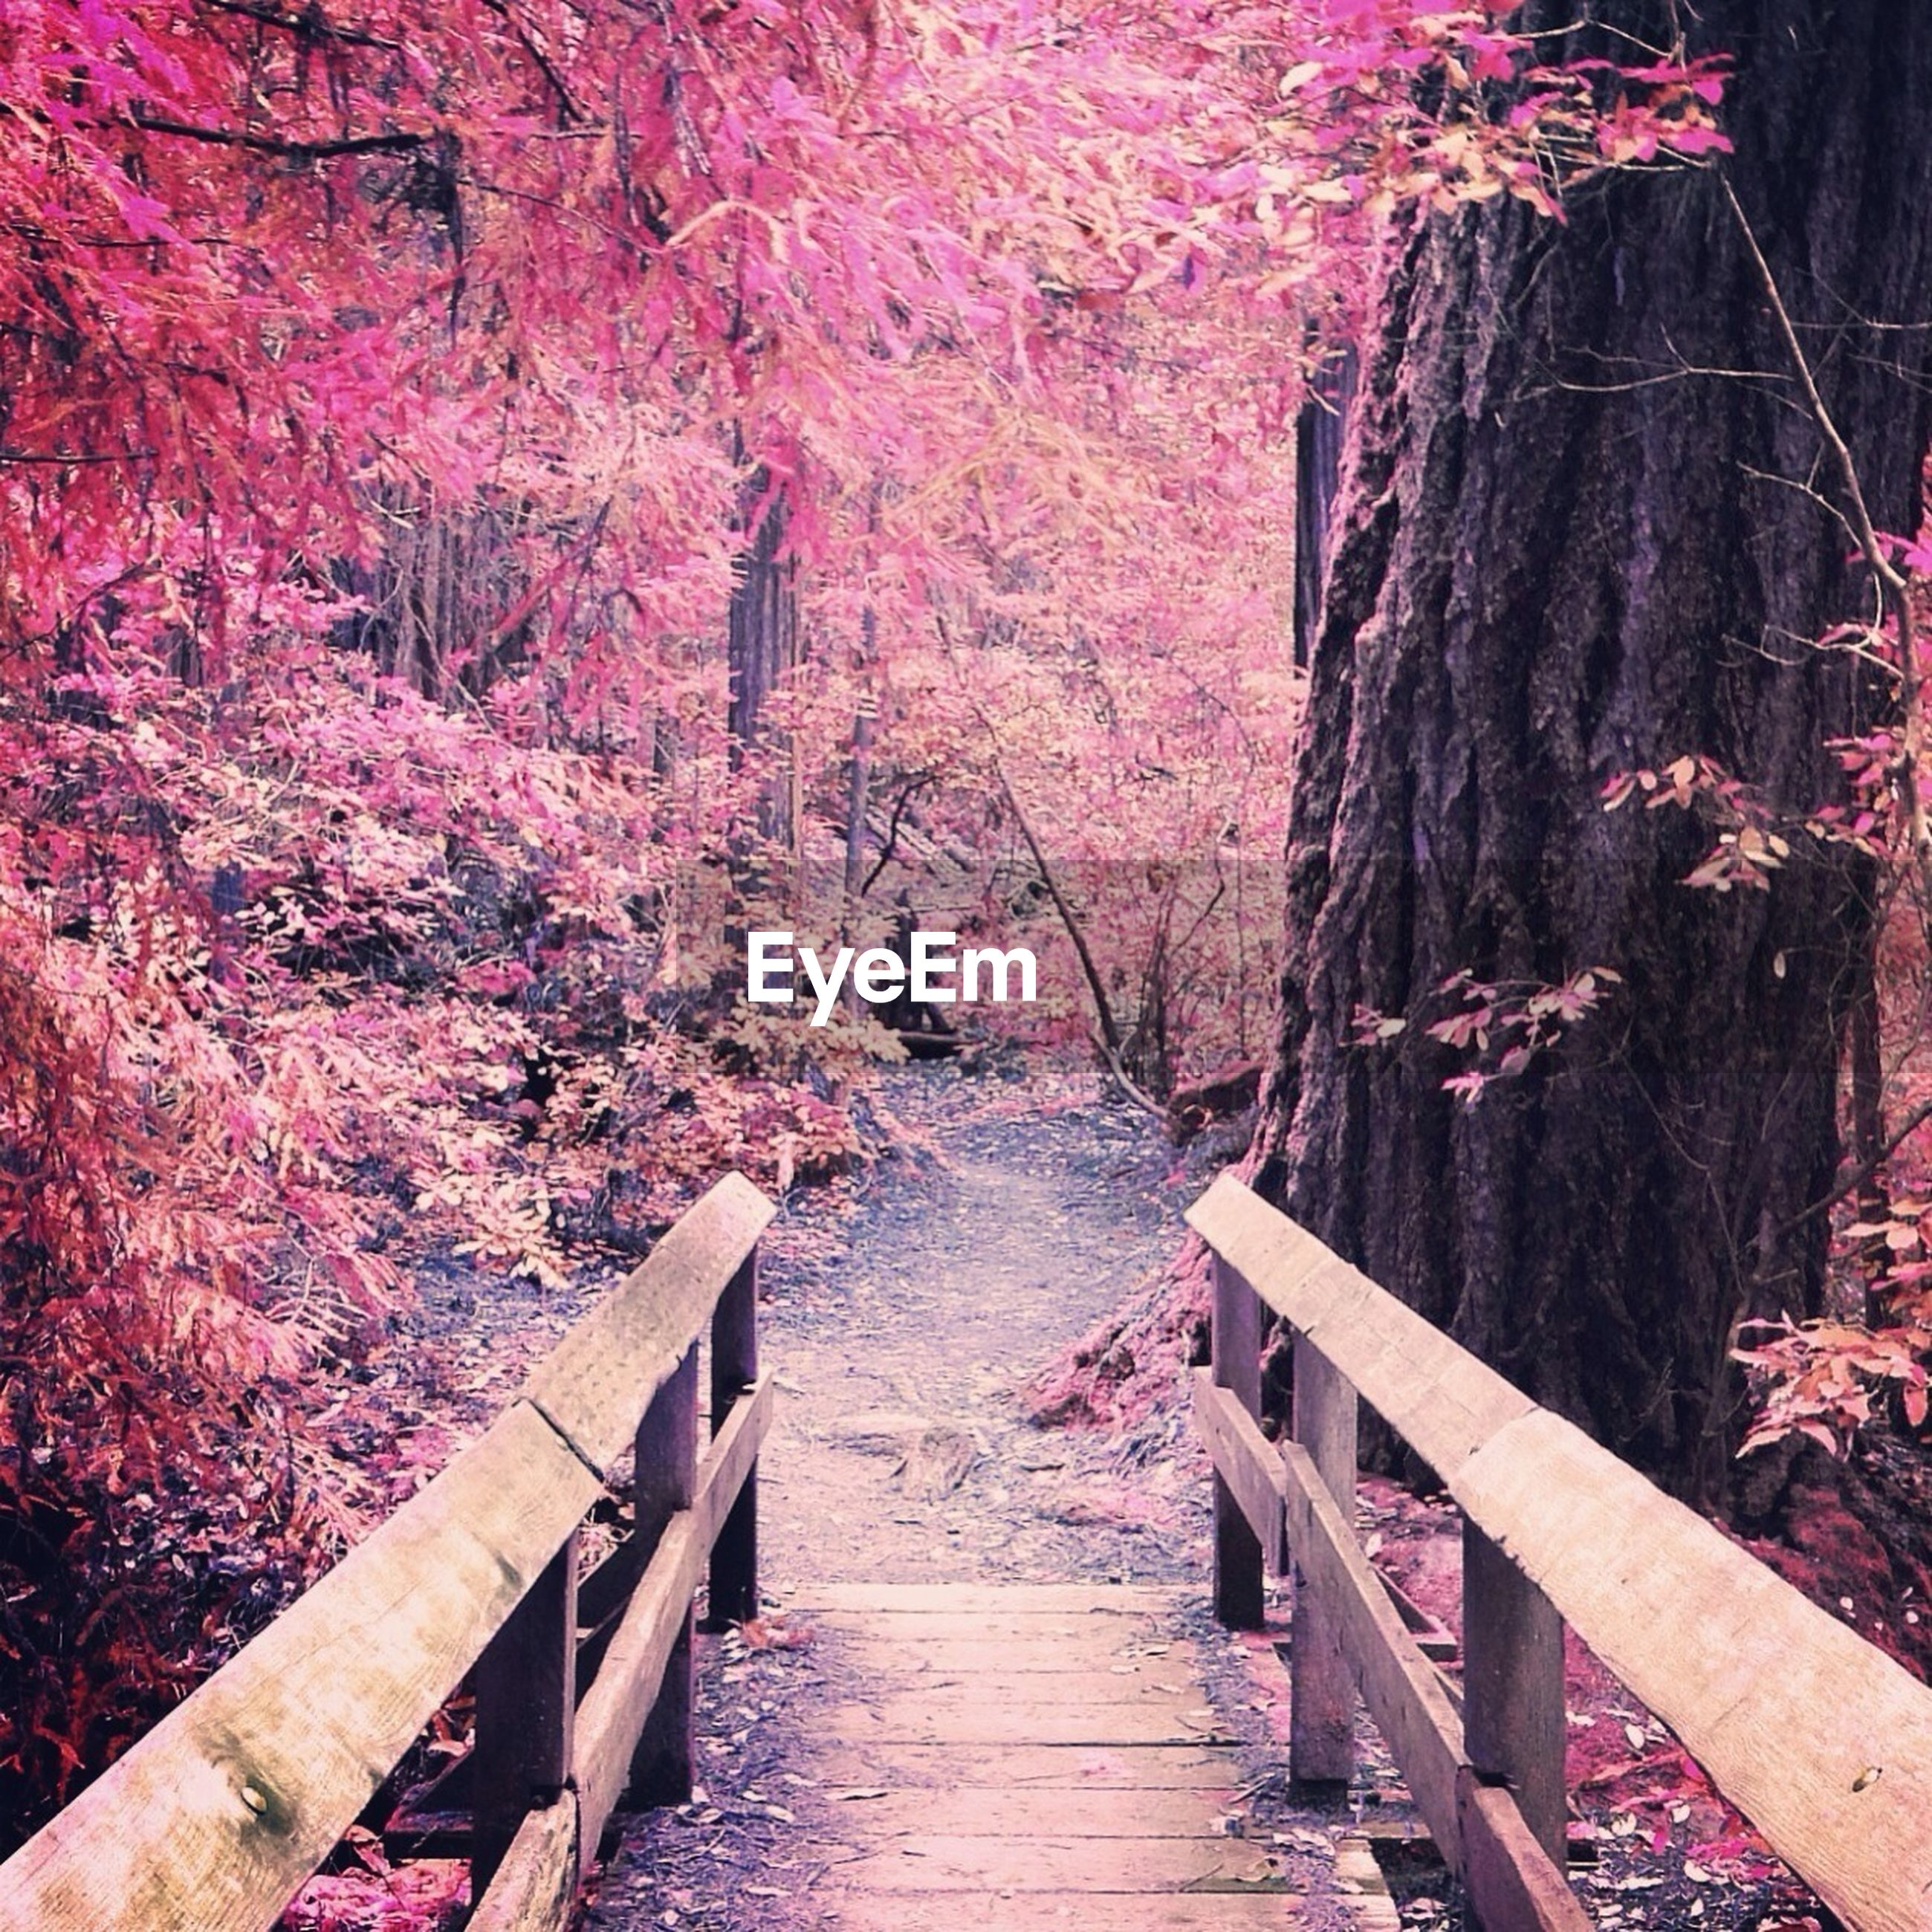 tree, wood - material, tranquility, beauty in nature, the way forward, nature, tranquil scene, railing, forest, scenics, boardwalk, water, footbridge, wooden, wood, branch, growth, red, outdoors, day